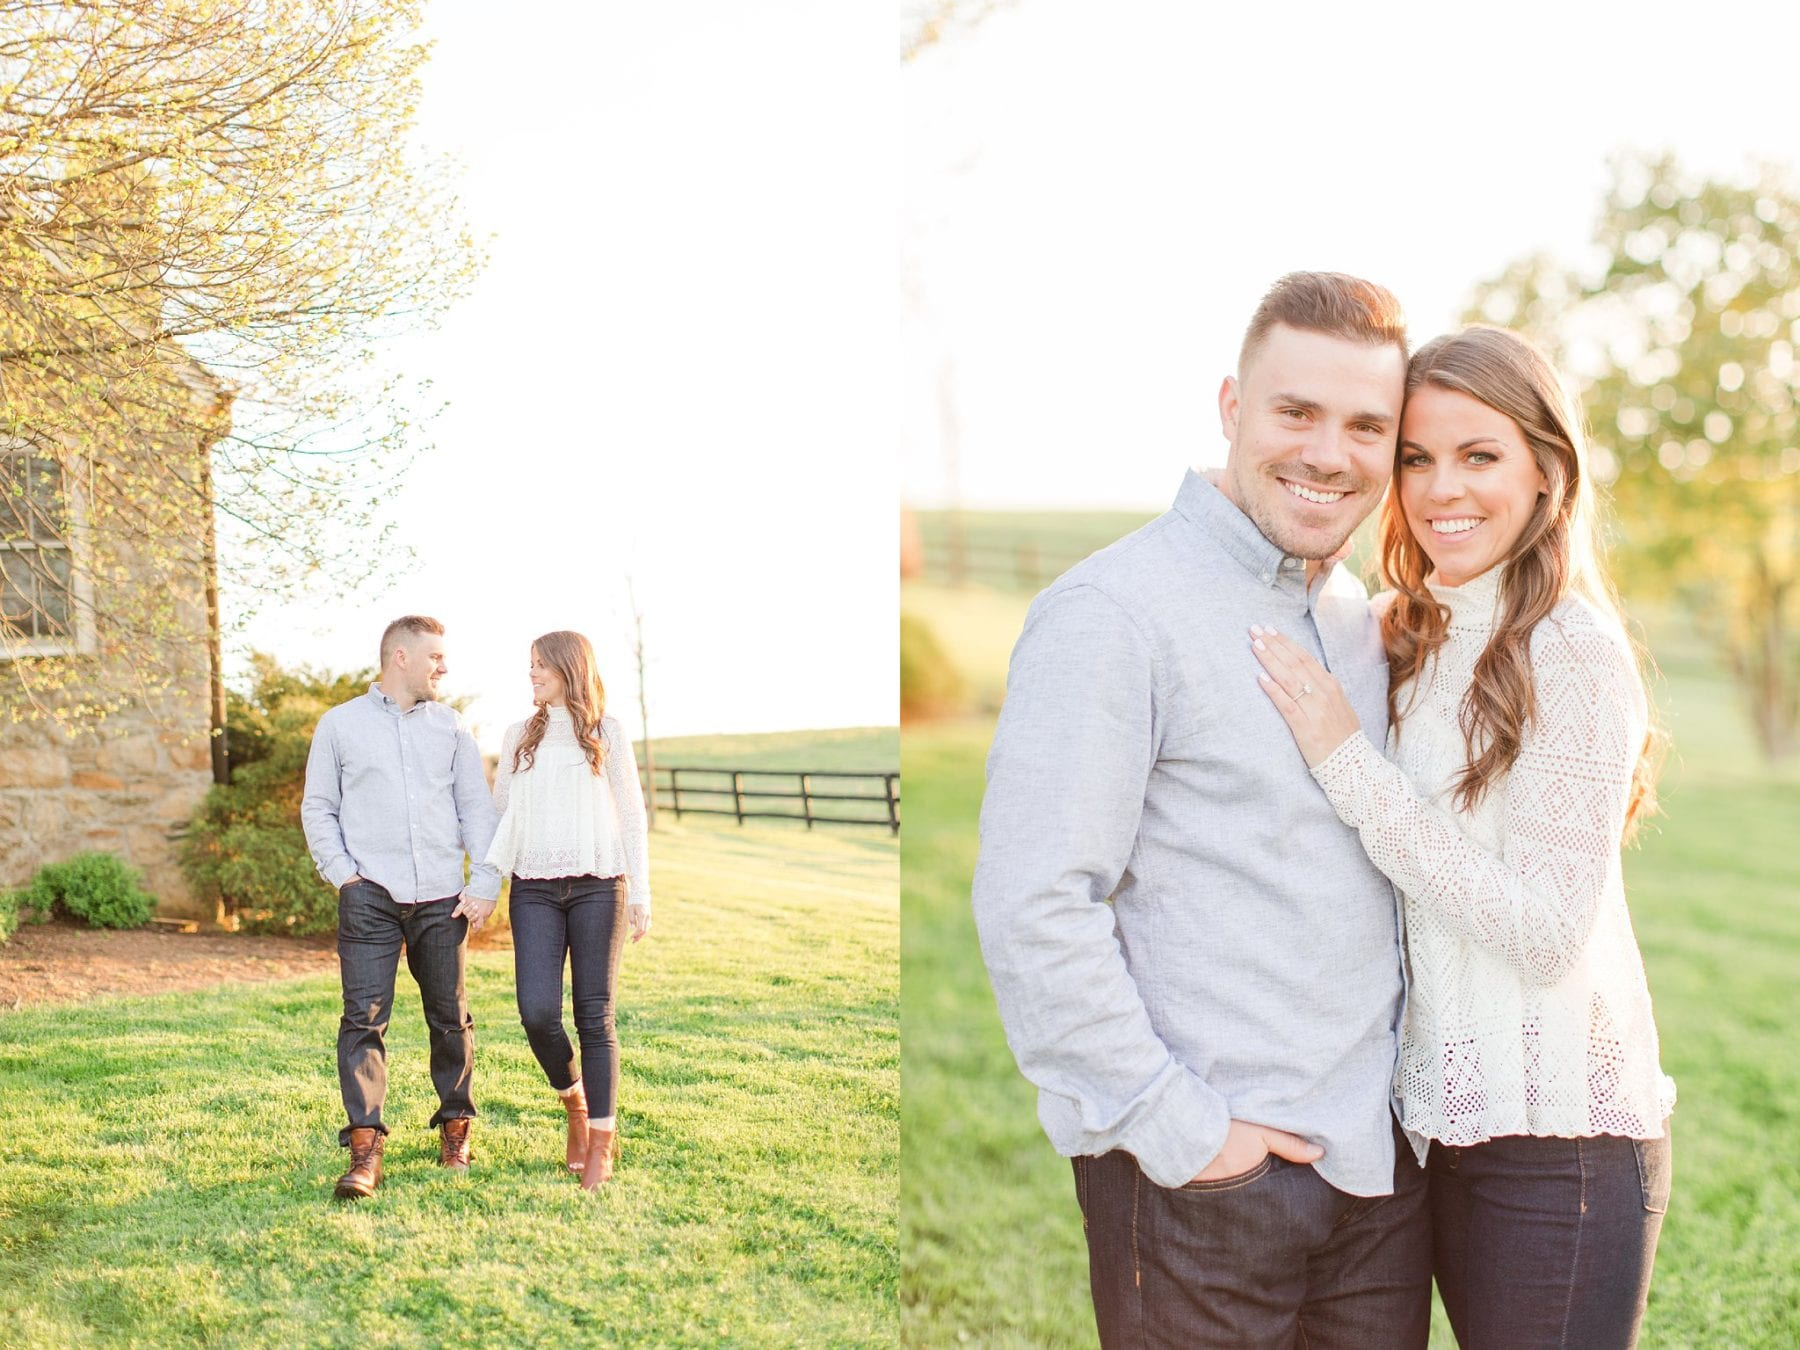 Goodstone Inn Engagement Session Virginia Wedding Photographer Megan Kelsey Photography-257.jpg